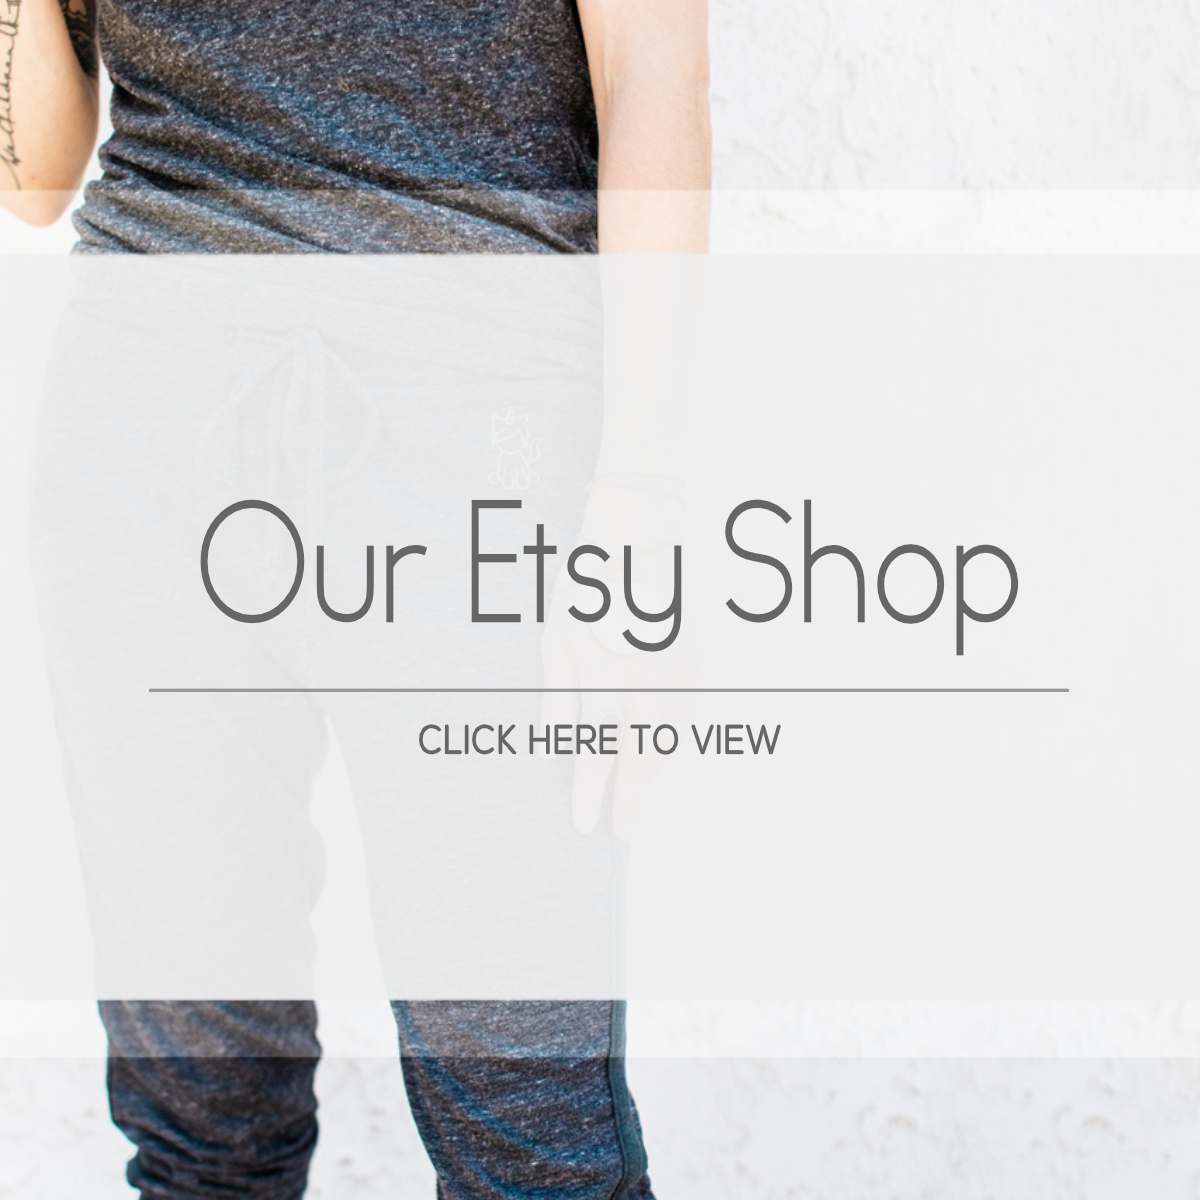 Shop for eco conscious clothing to help animals in the For Animals For Earth Etsy Shop